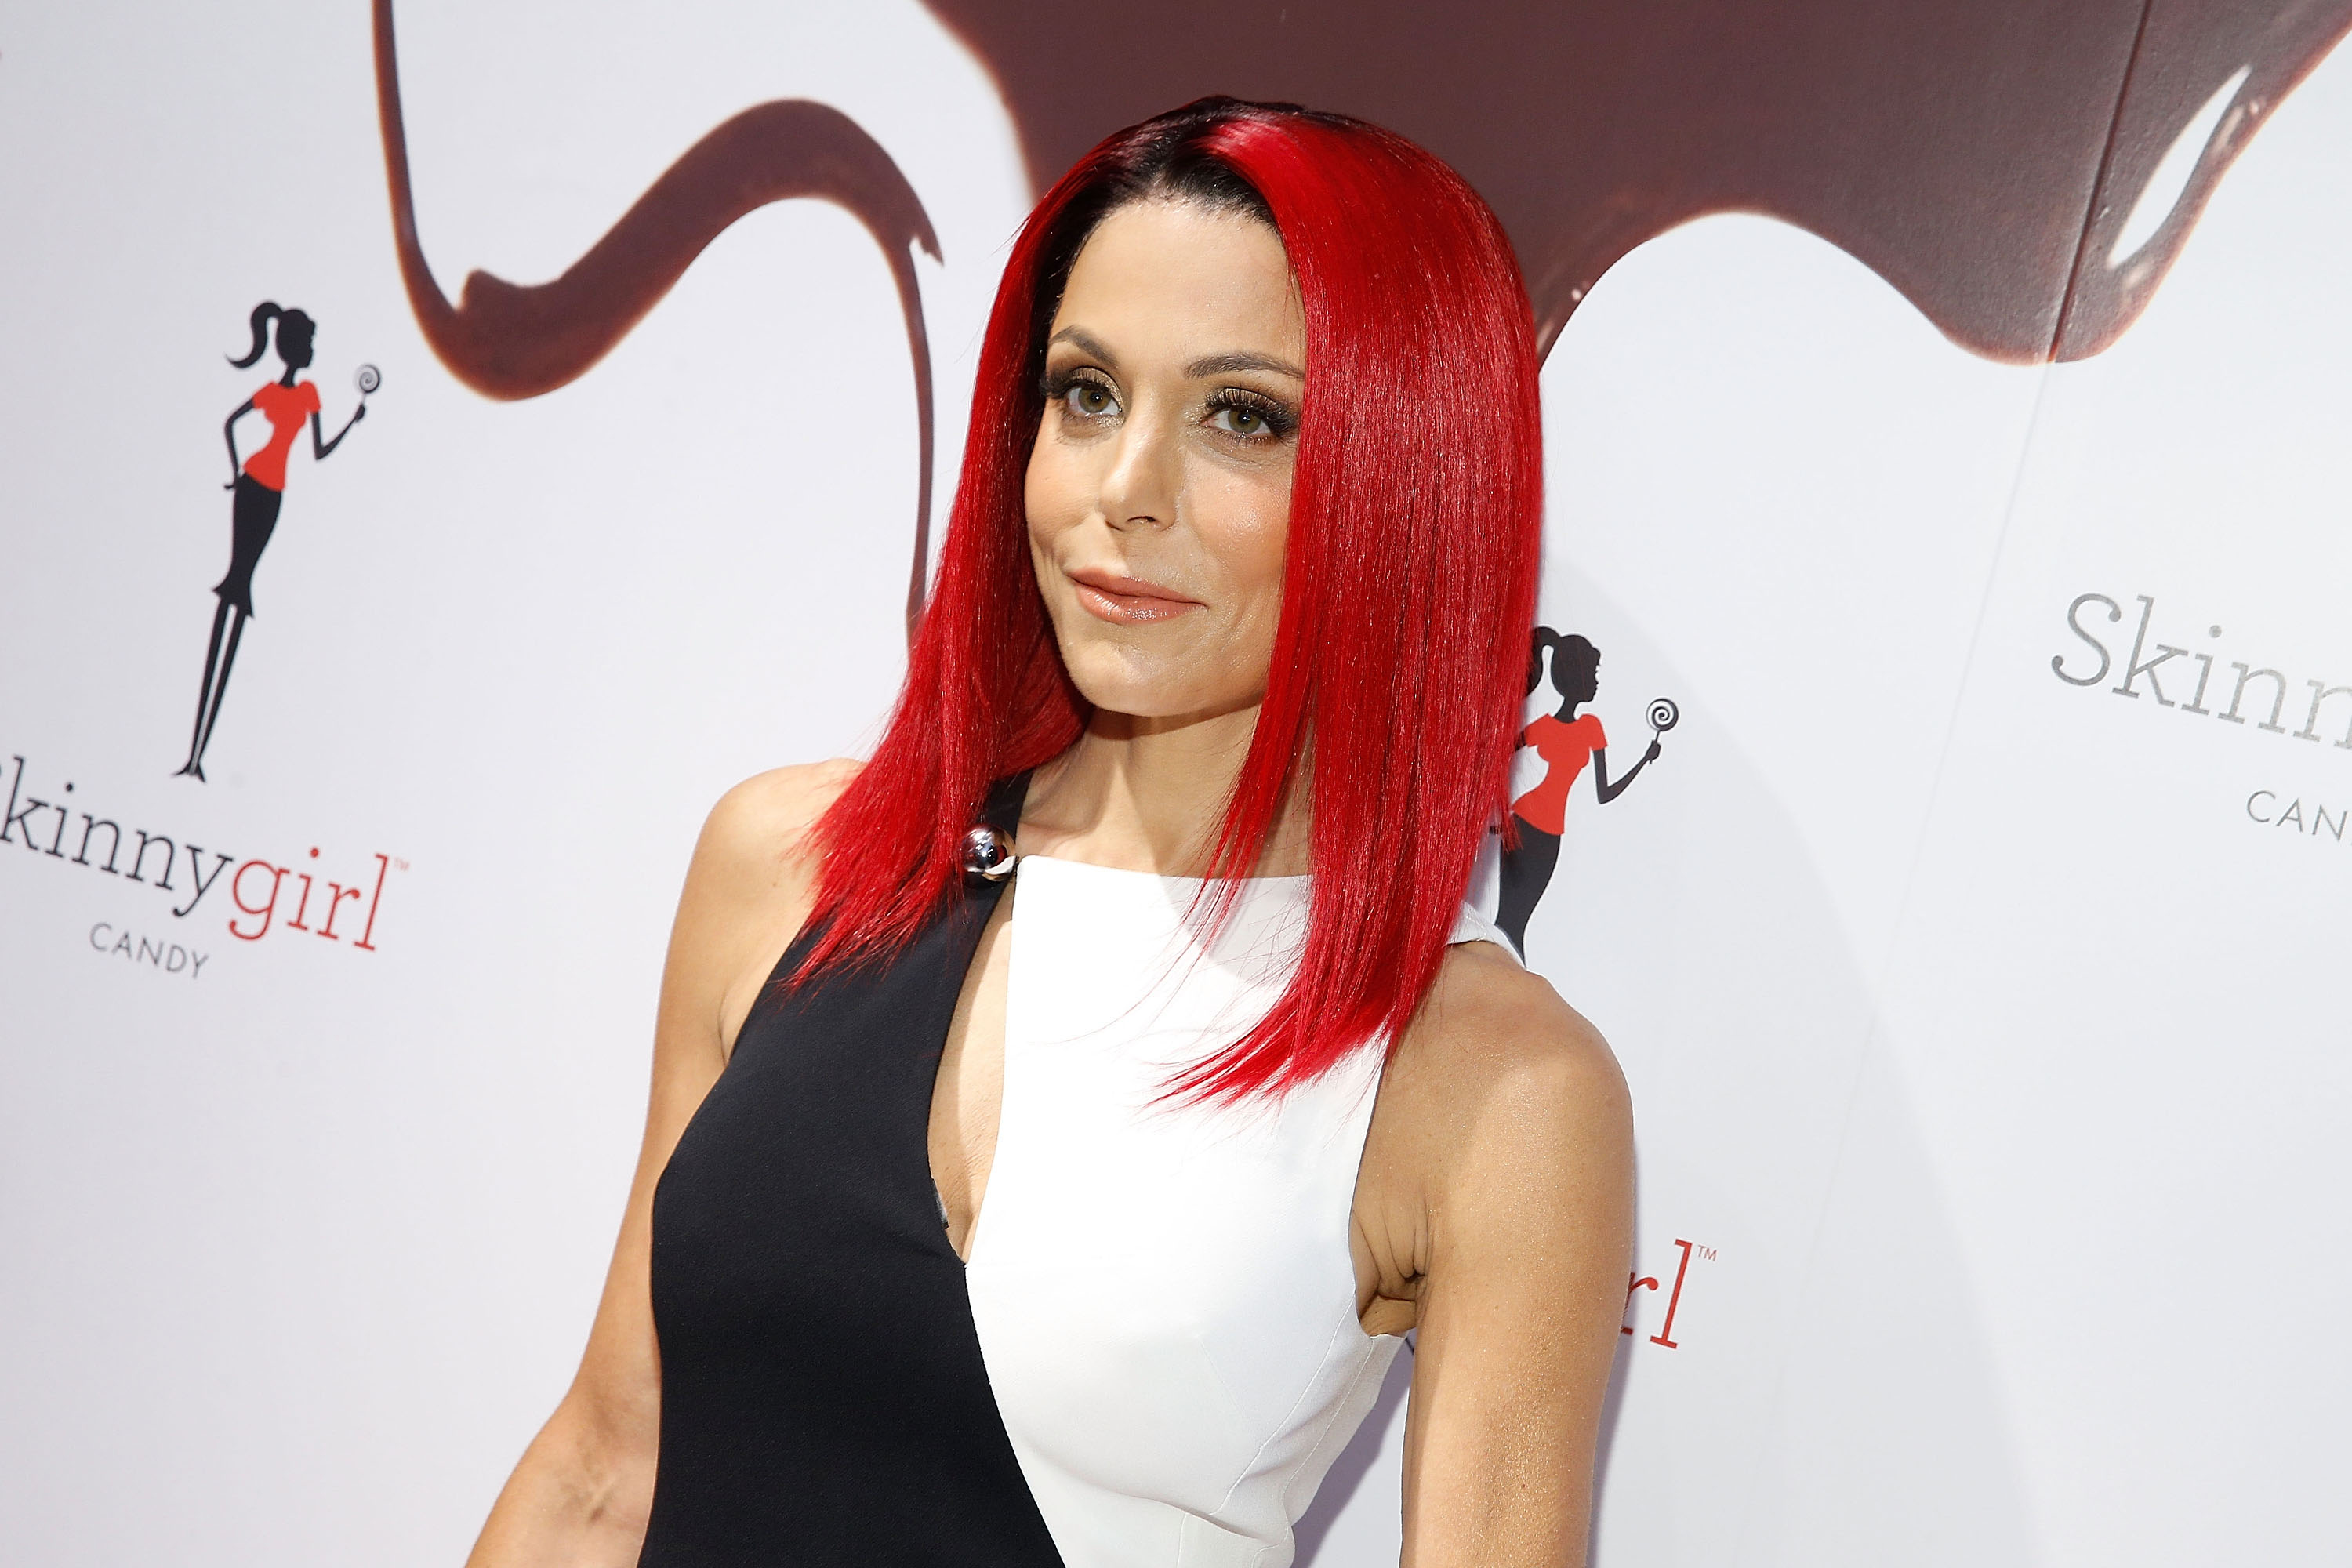 Bethenny Frankel attends Skinny Girl Candy Launch at Dylan's Candy Bar on January 26, 2016 in New York City.